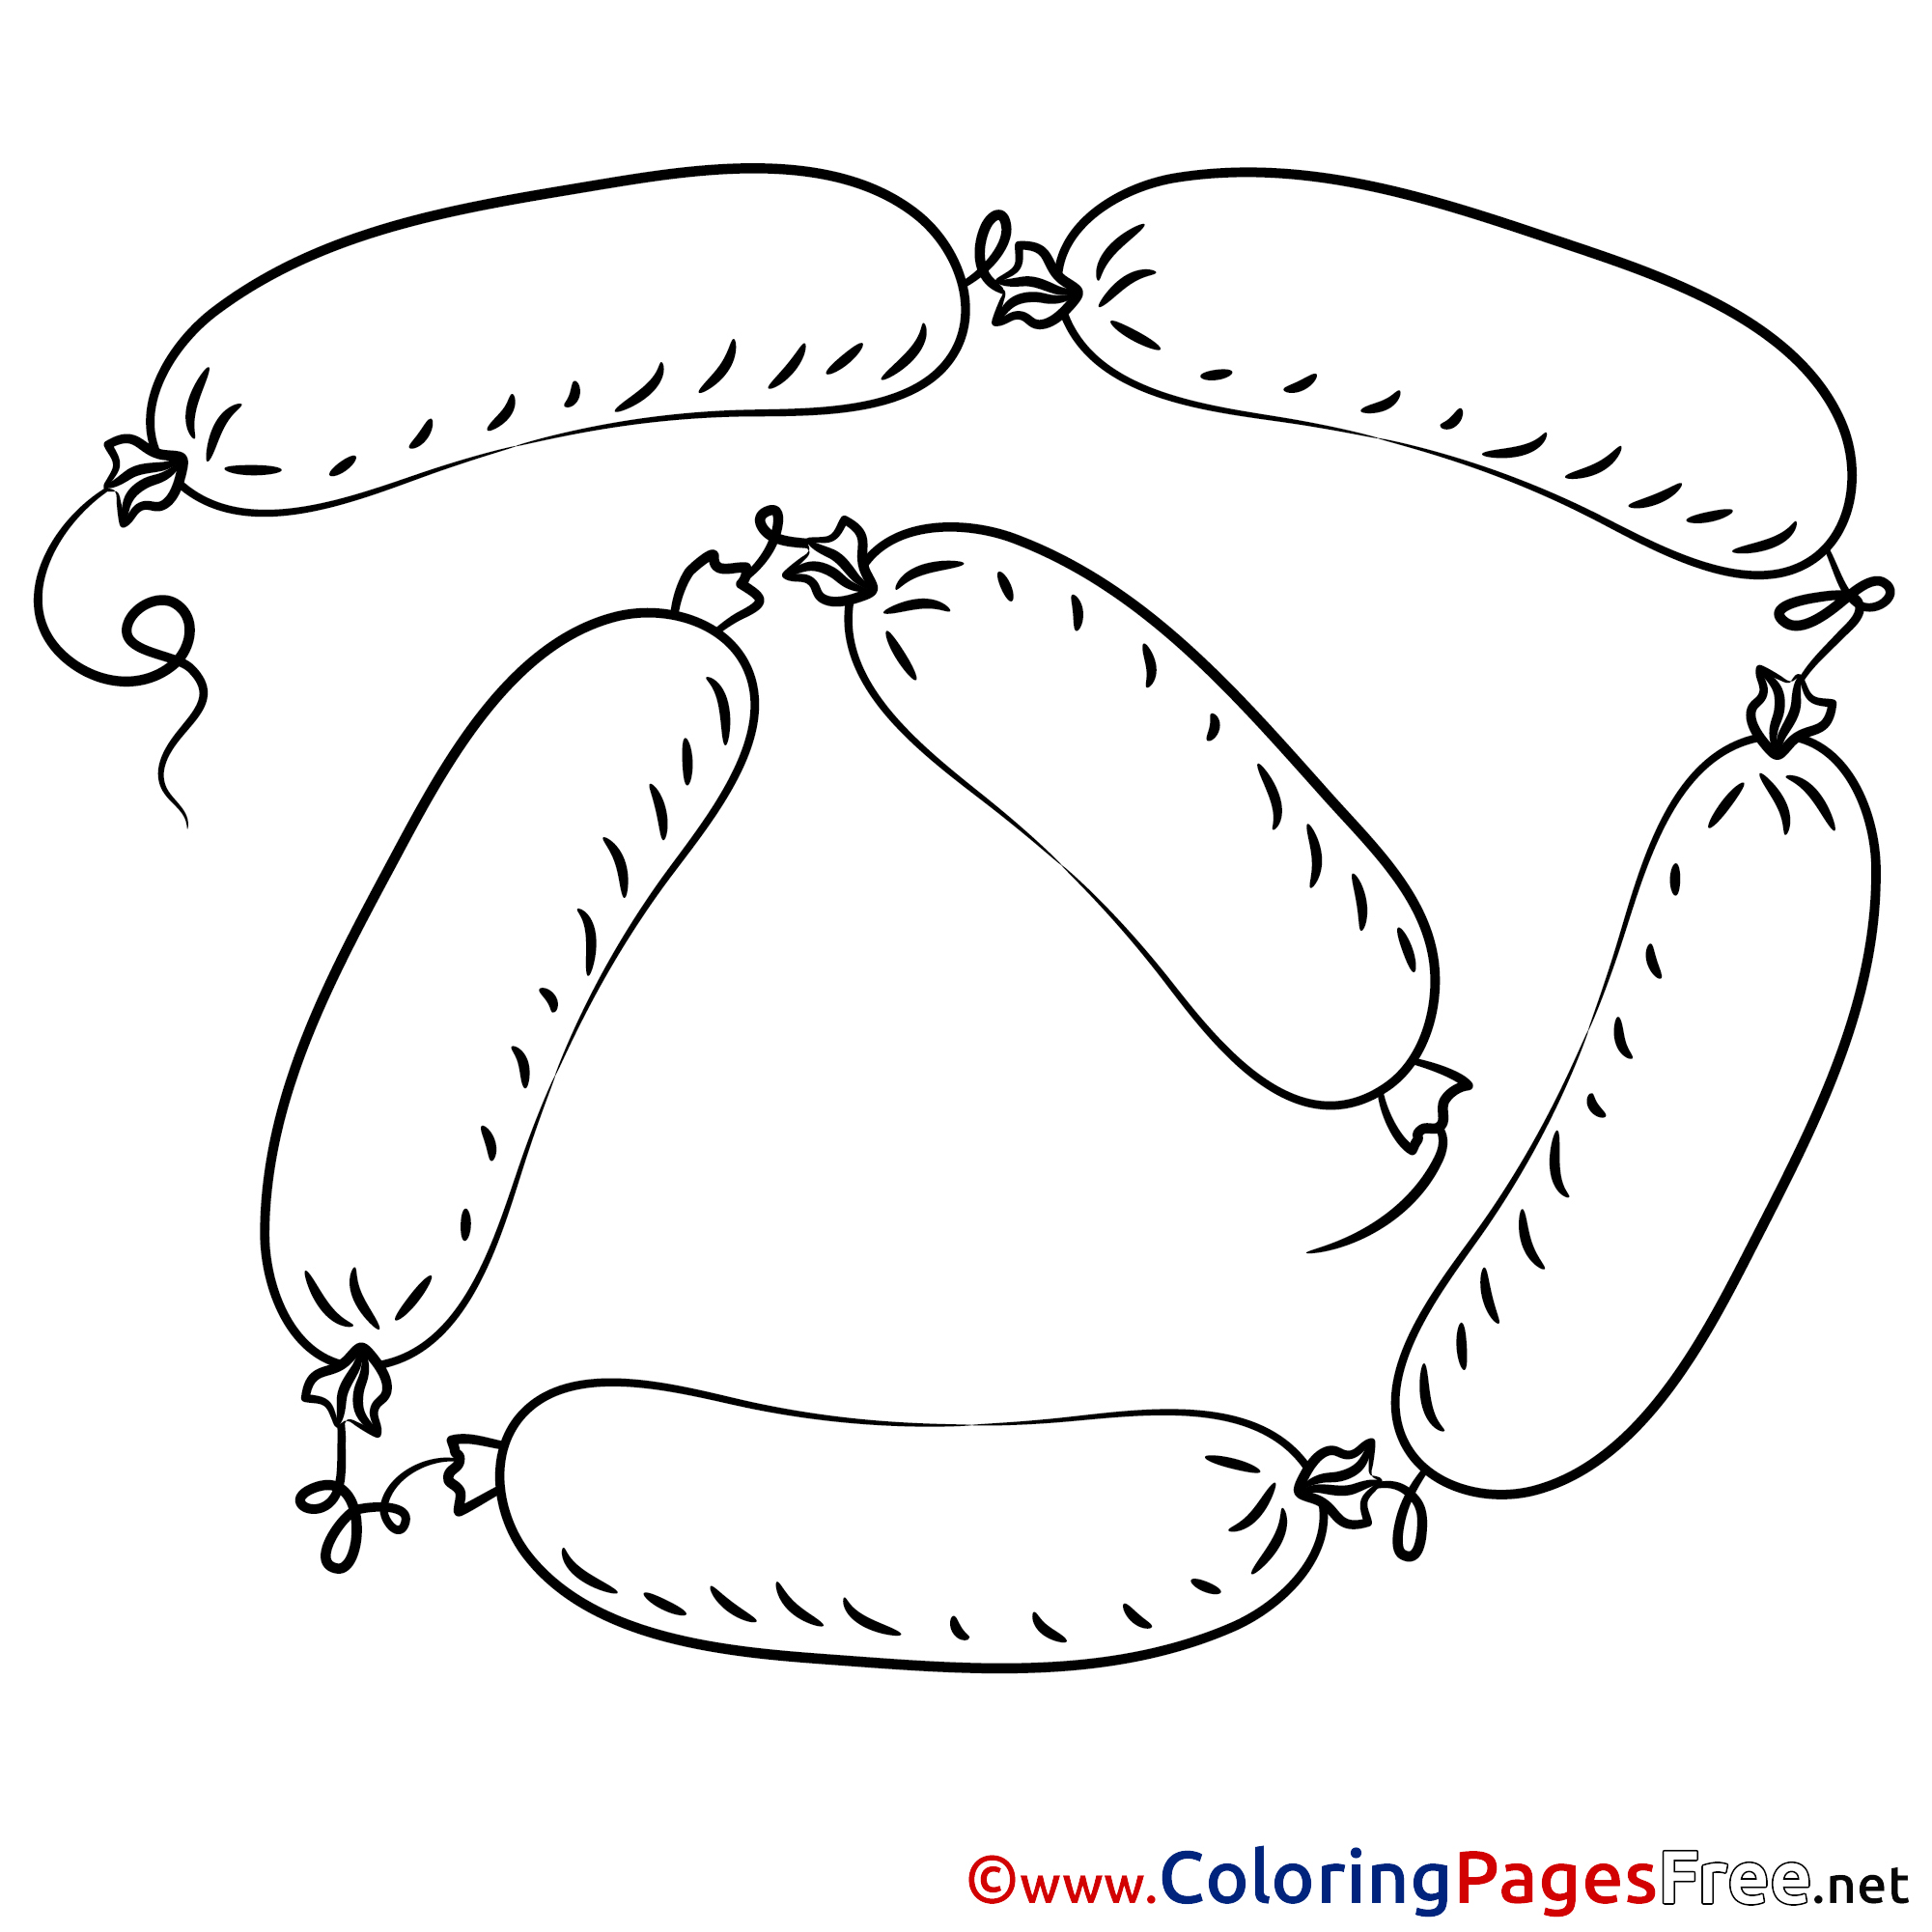 Printable Fashion Design Coloring Pages